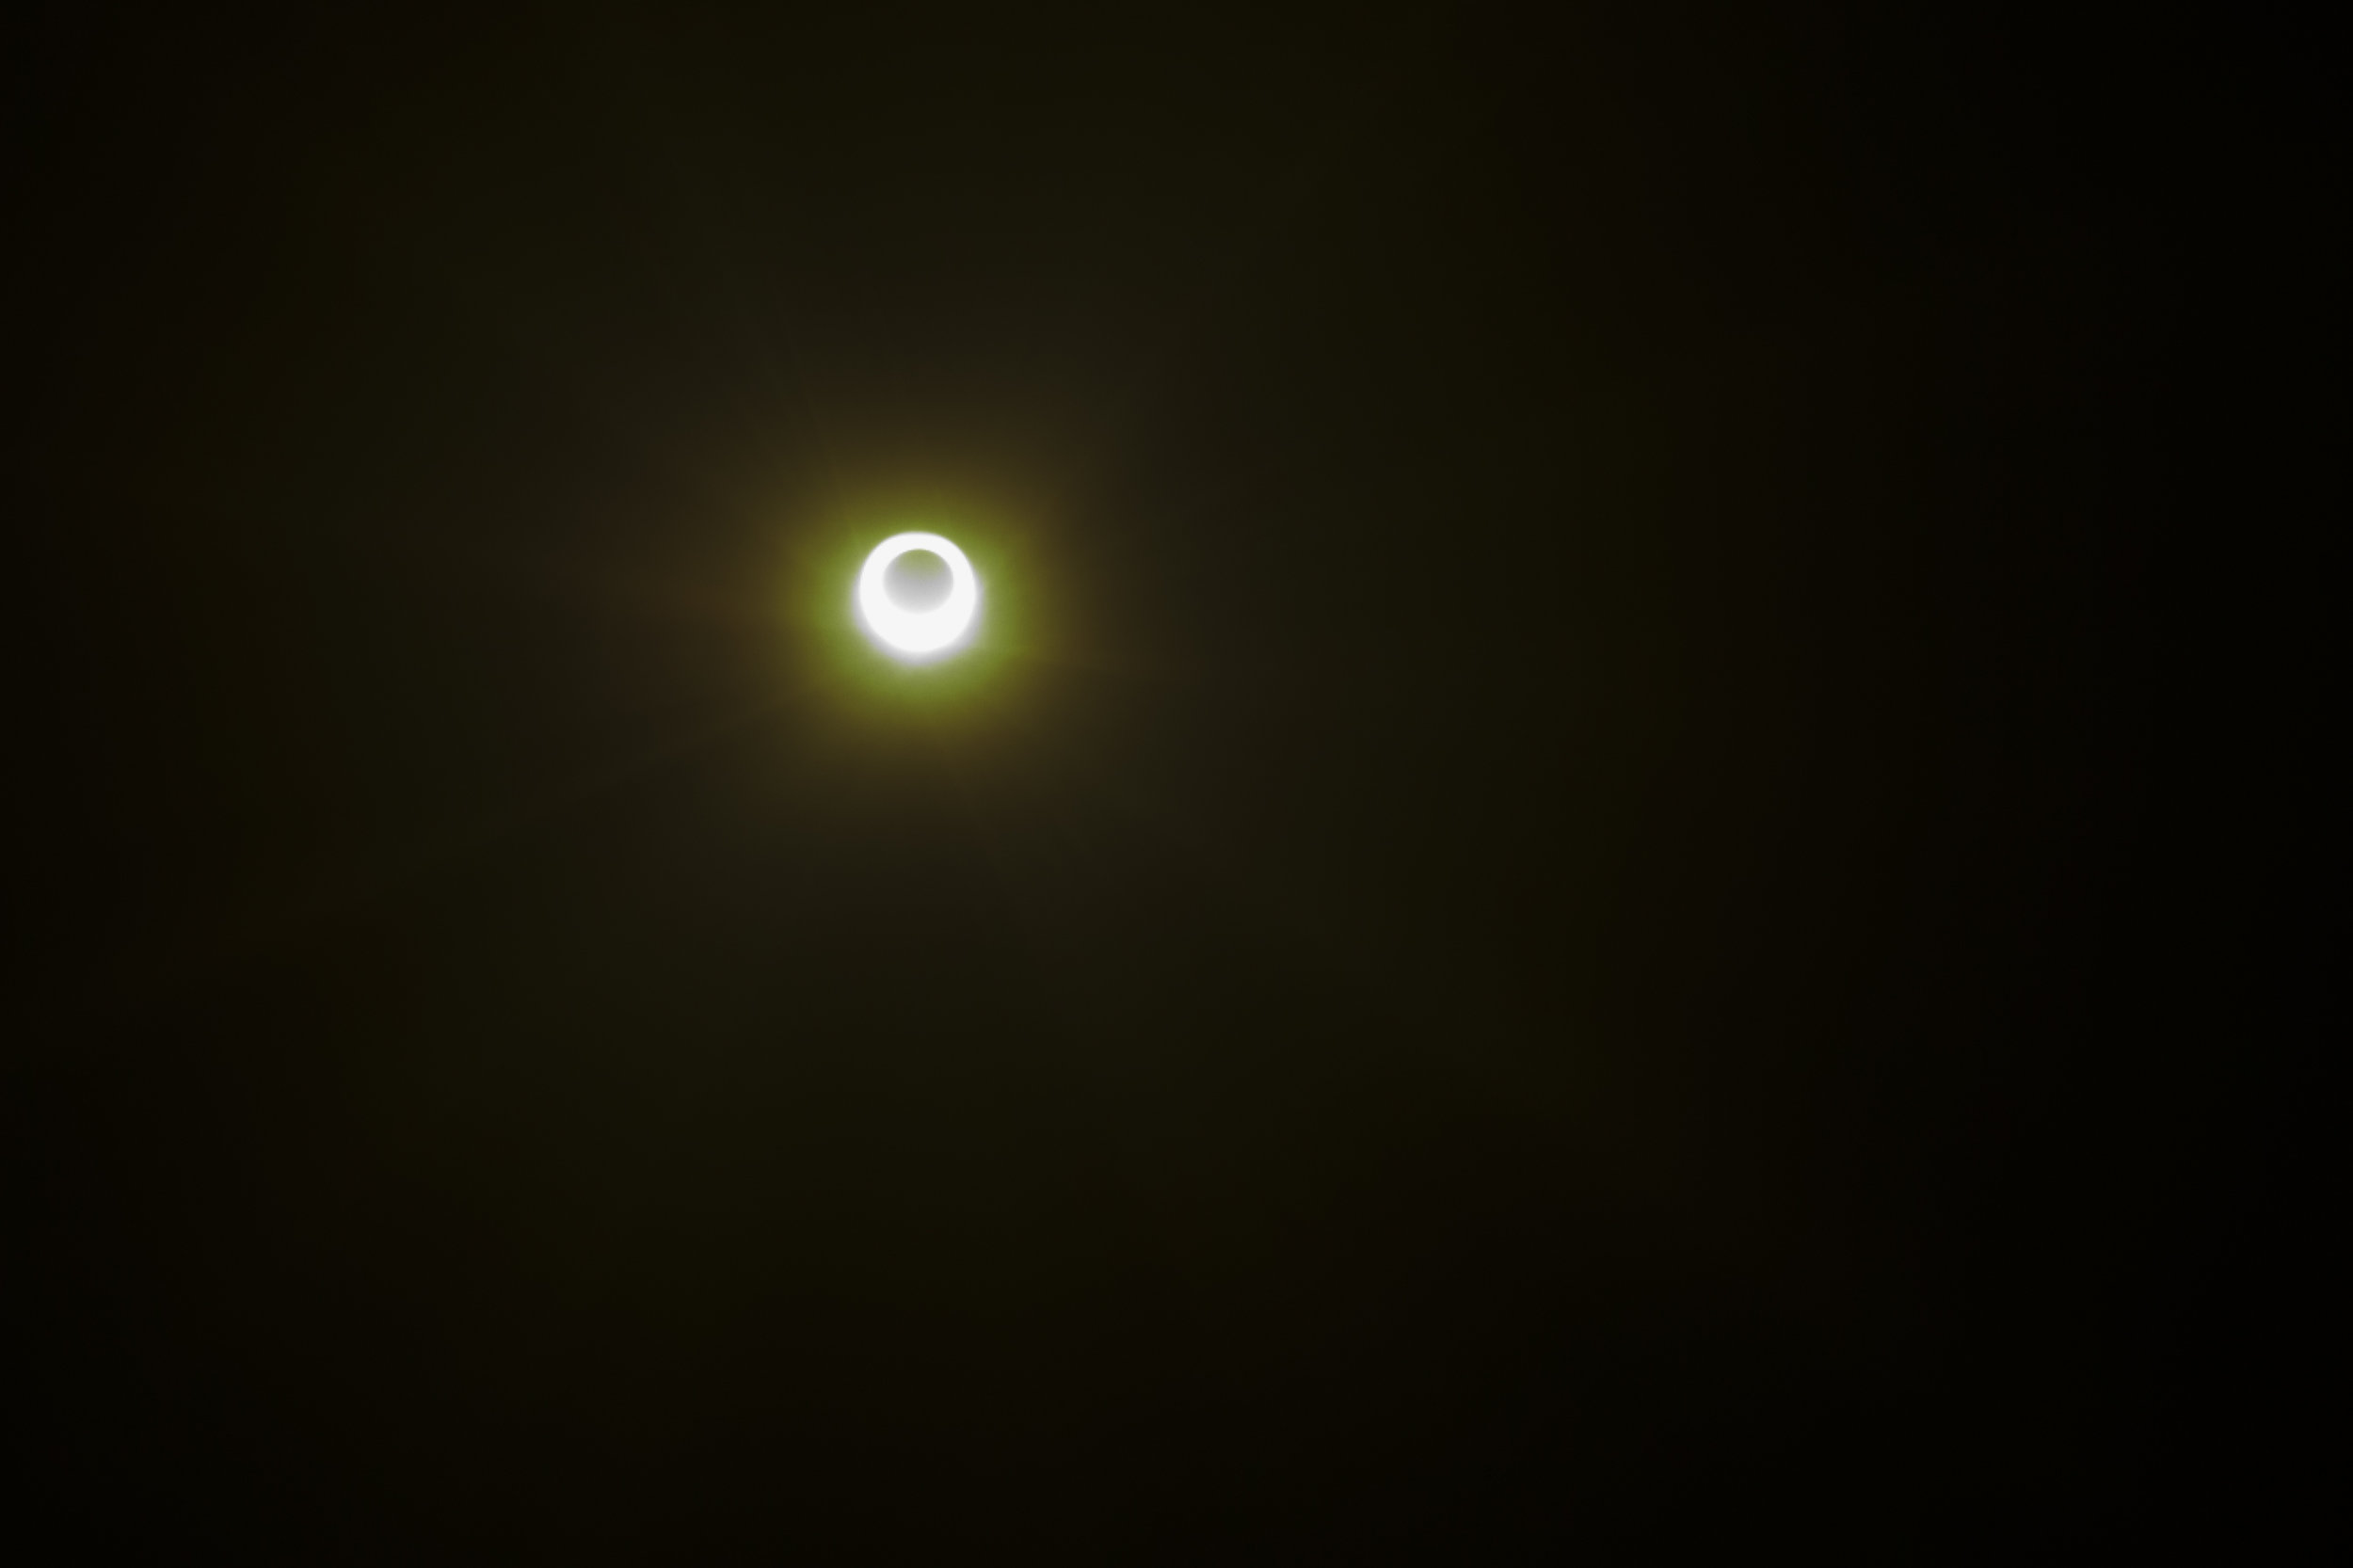 The Annular Eclipse in Tonopah, 2012